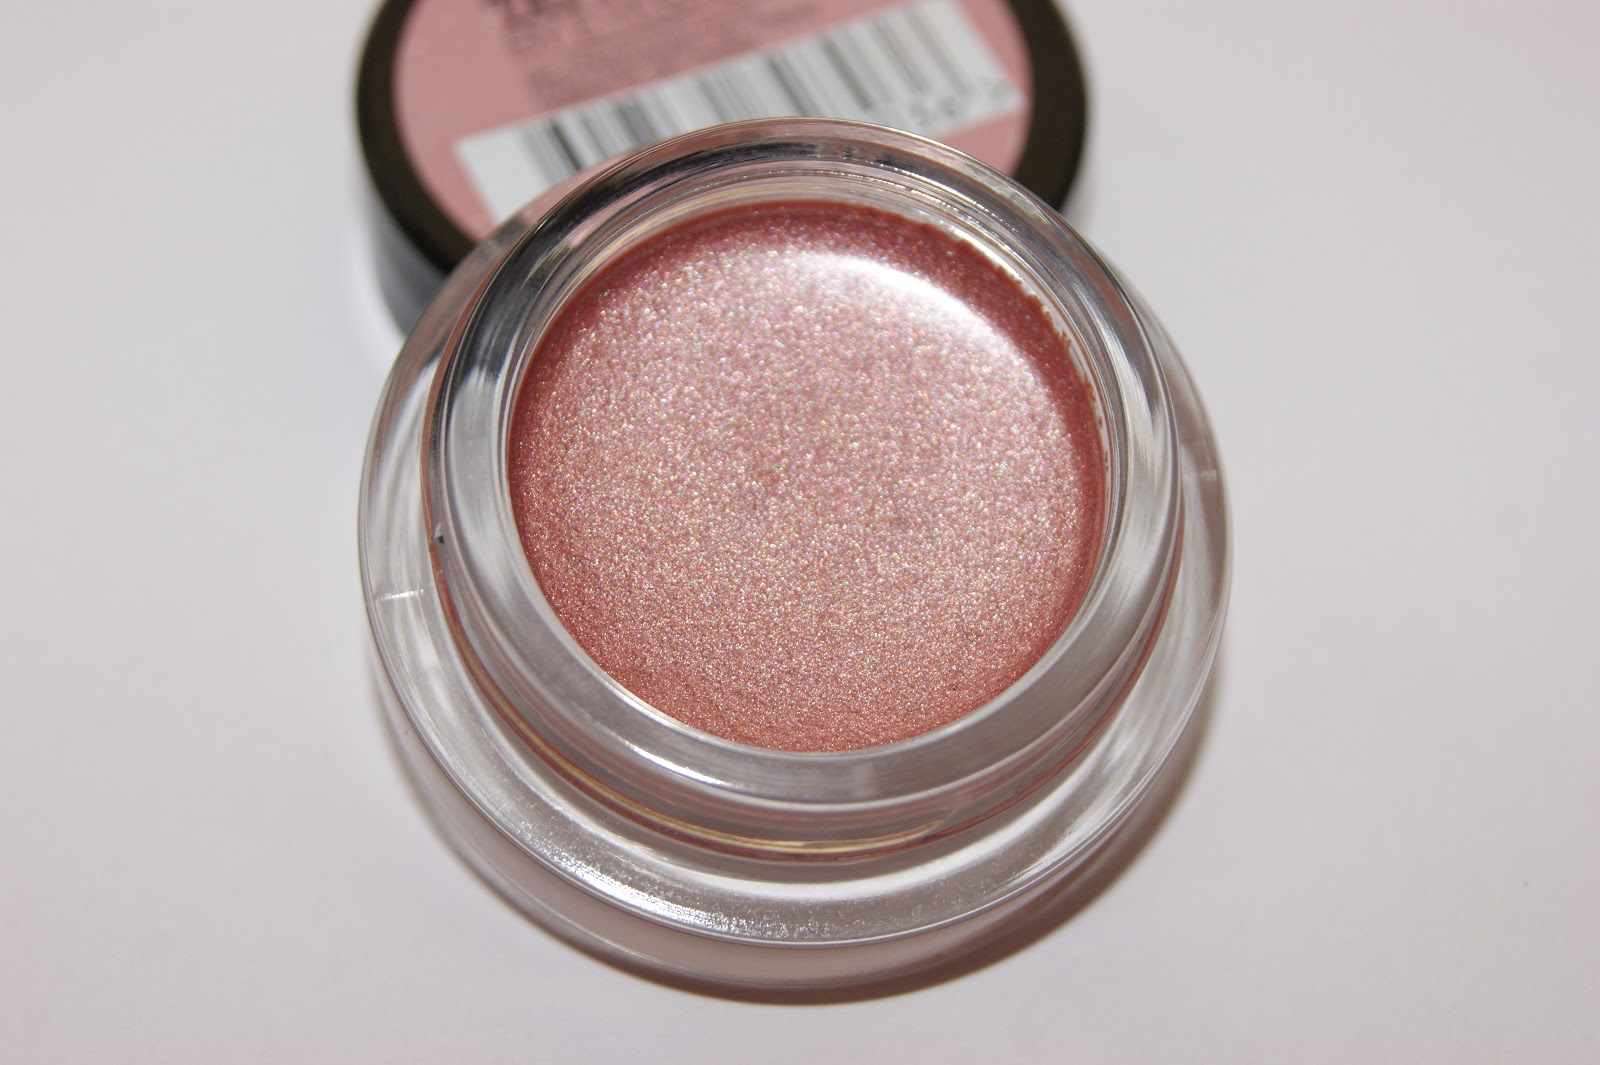 maybelline color 24hr eyeshadow in pink gold